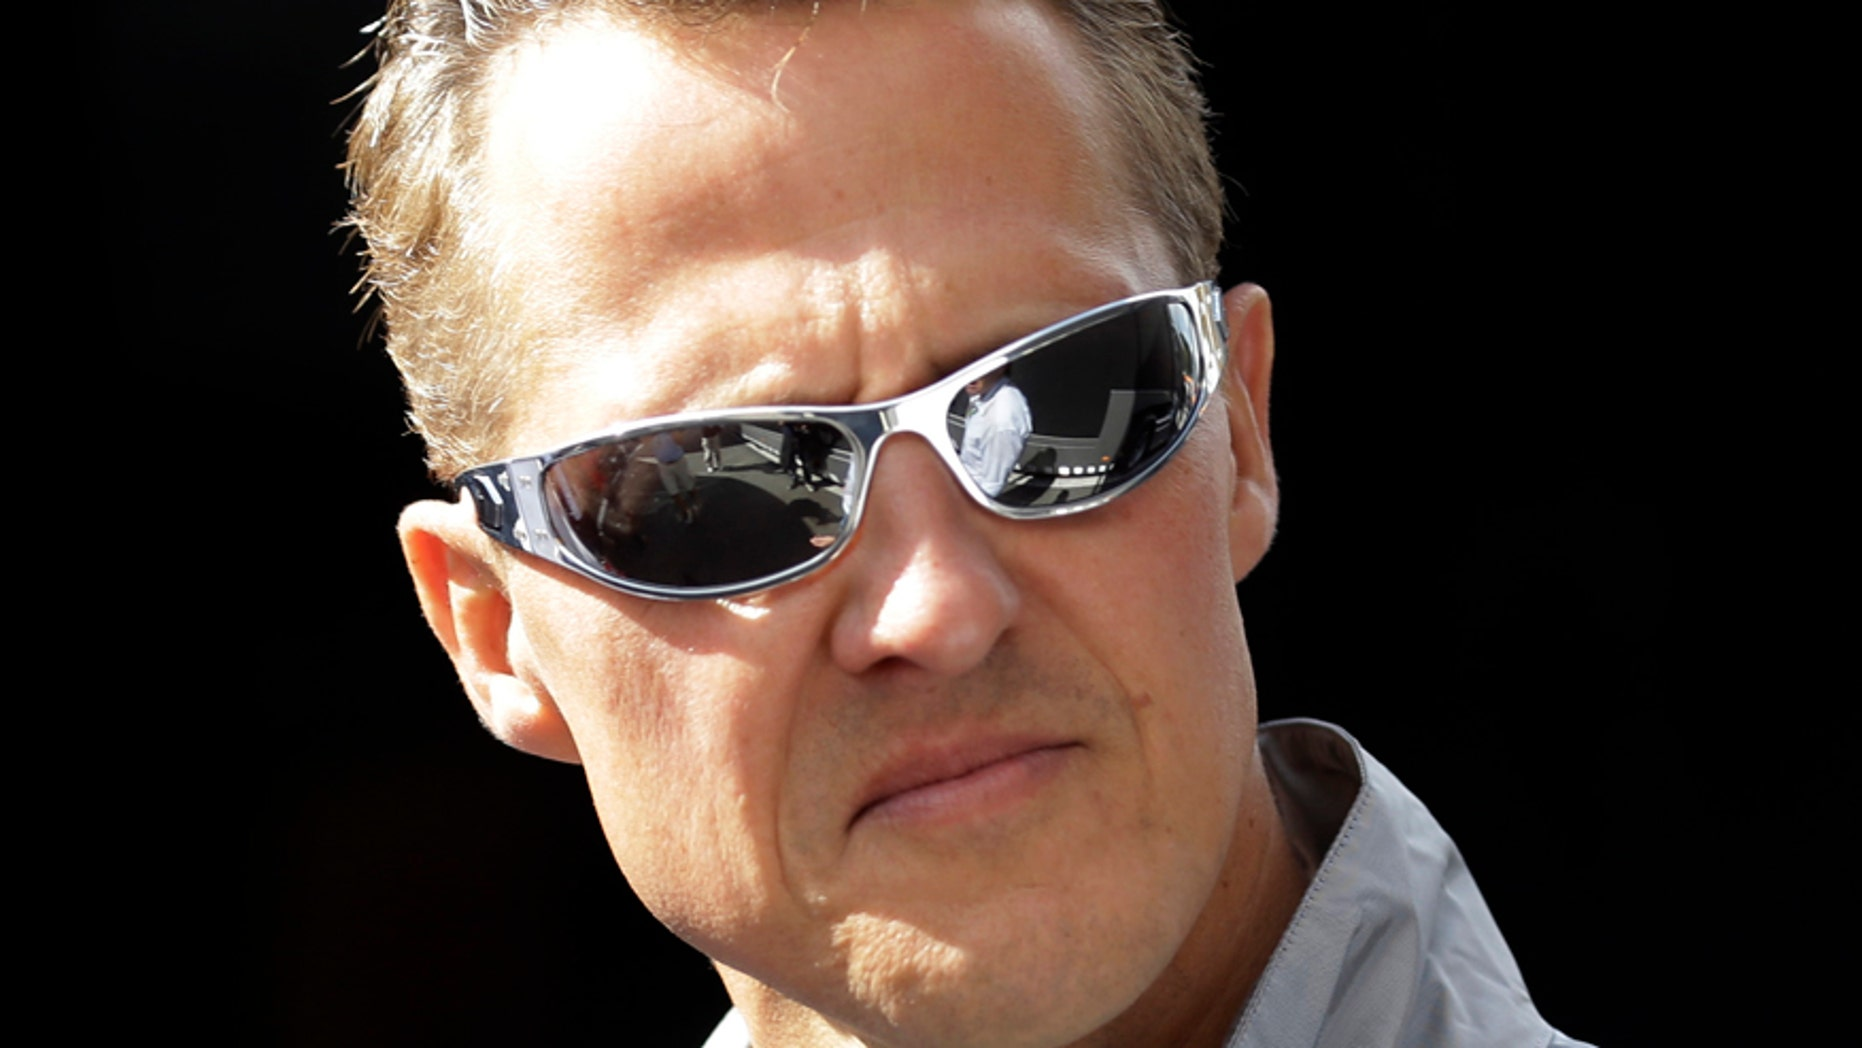 FILE - In this Thursday, Aug. 30, 2012 file photo, former Mercedes Grand Prix driver Michael Schumacher of Germany, looks on ahead the Belgium Formula One Grand Prix in Spa-Francorchamps circuit , Belgium.  Former Formula One world champion Michael Schumacher has left hospital to continue his recovery at home, his manager said Tuesday. The seven-time champion suffered a serious head injury while skiing in France in December, resulting in him being put in a coma. (AP Photo/Luca Bruno, File)